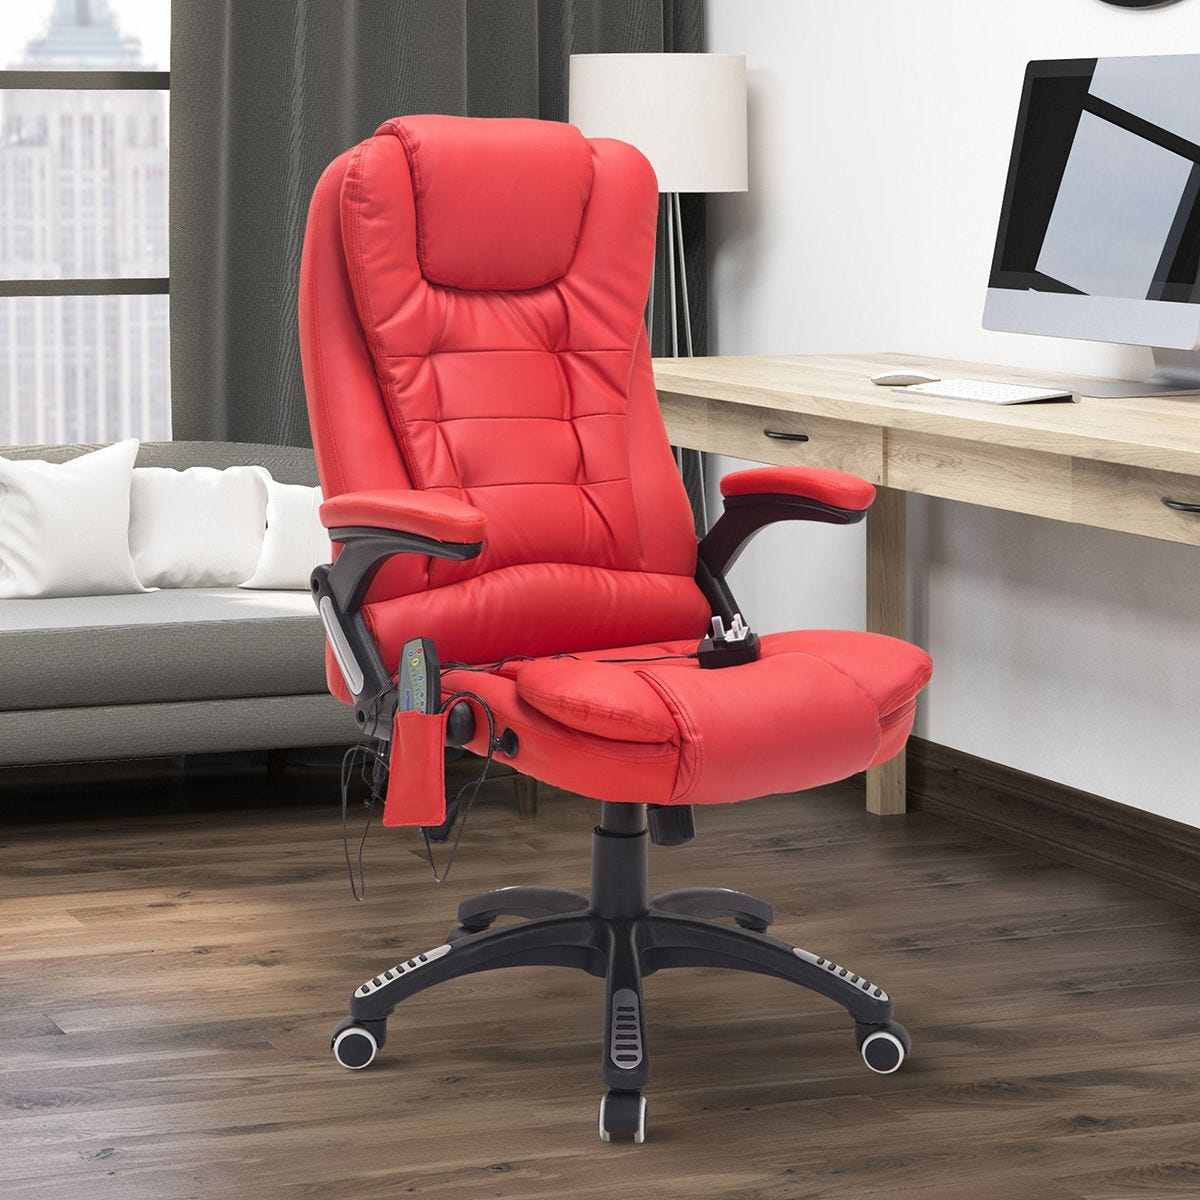 Faux Leather Vibrating Massage Office Swivel Chair With Remote Control Red